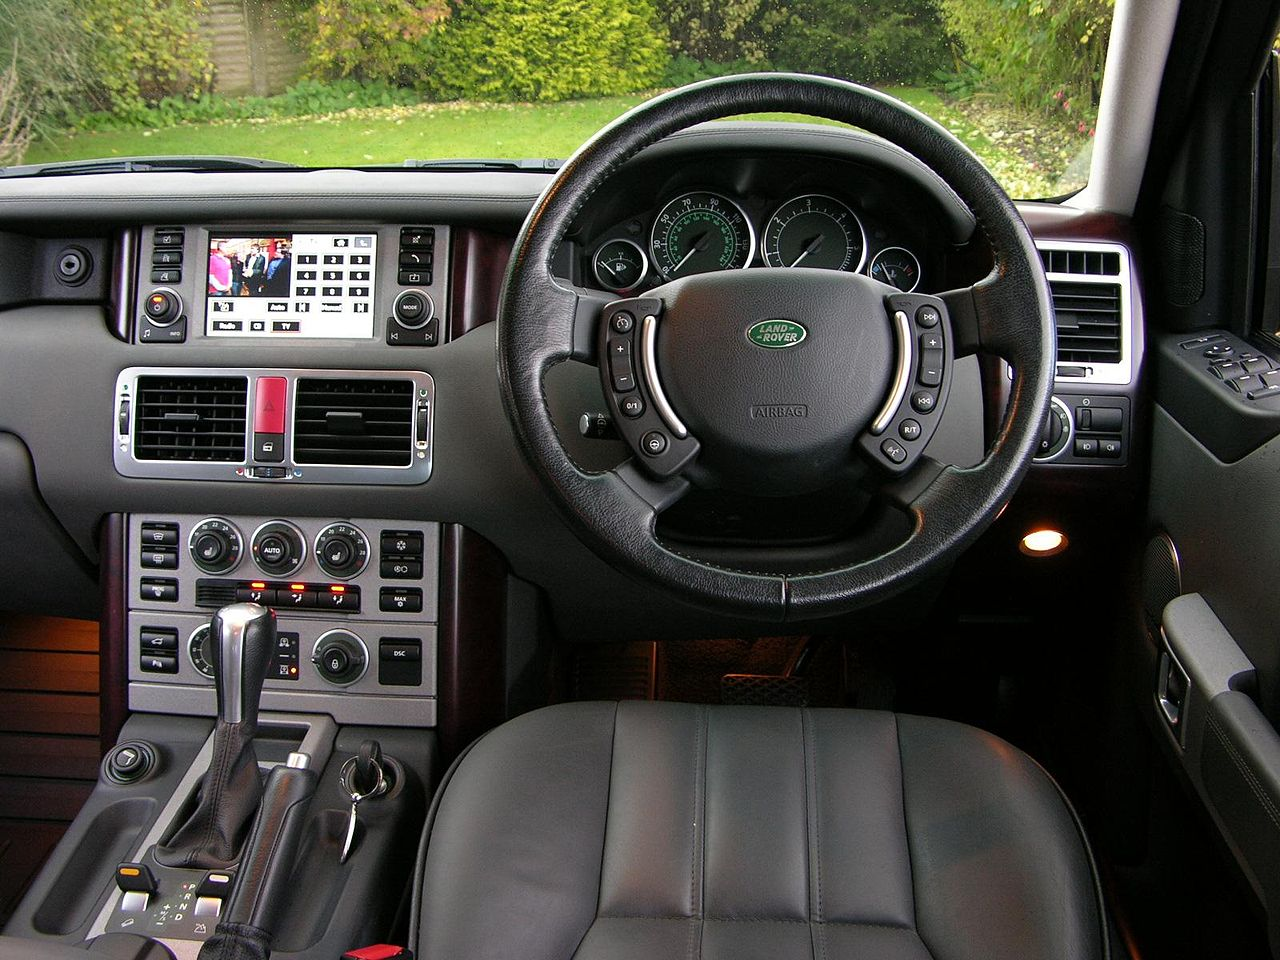 hight resolution of file 2006 range rover td6 vogue flickr the car spy 12 jpg rh commons wikimedia org